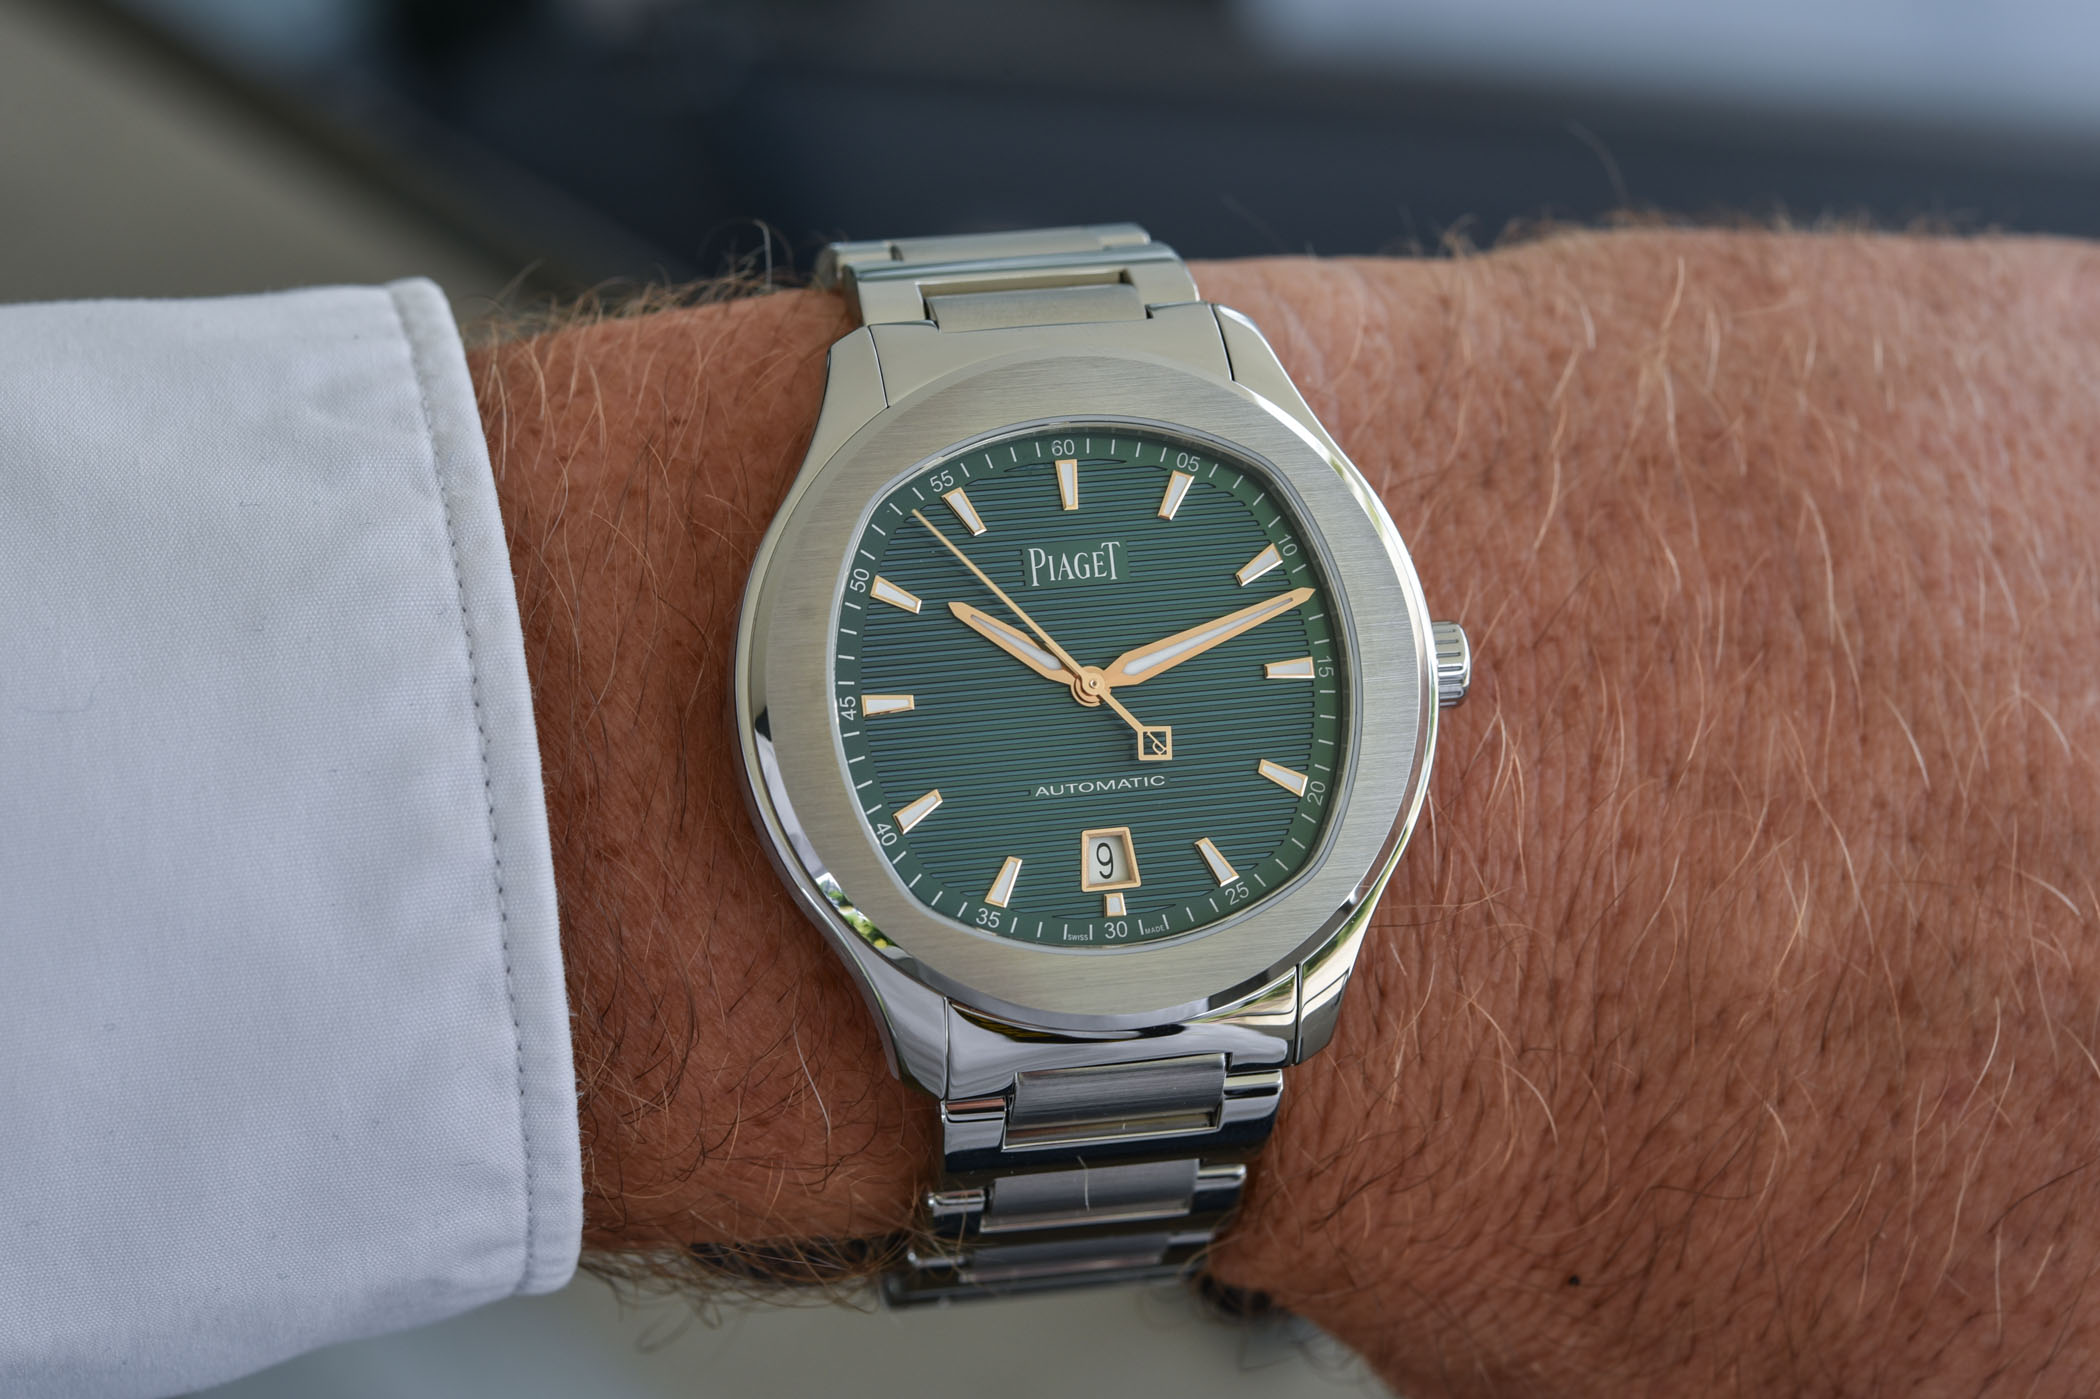 Piaget Polo S Automatic Green-and-Gold Limited Edition